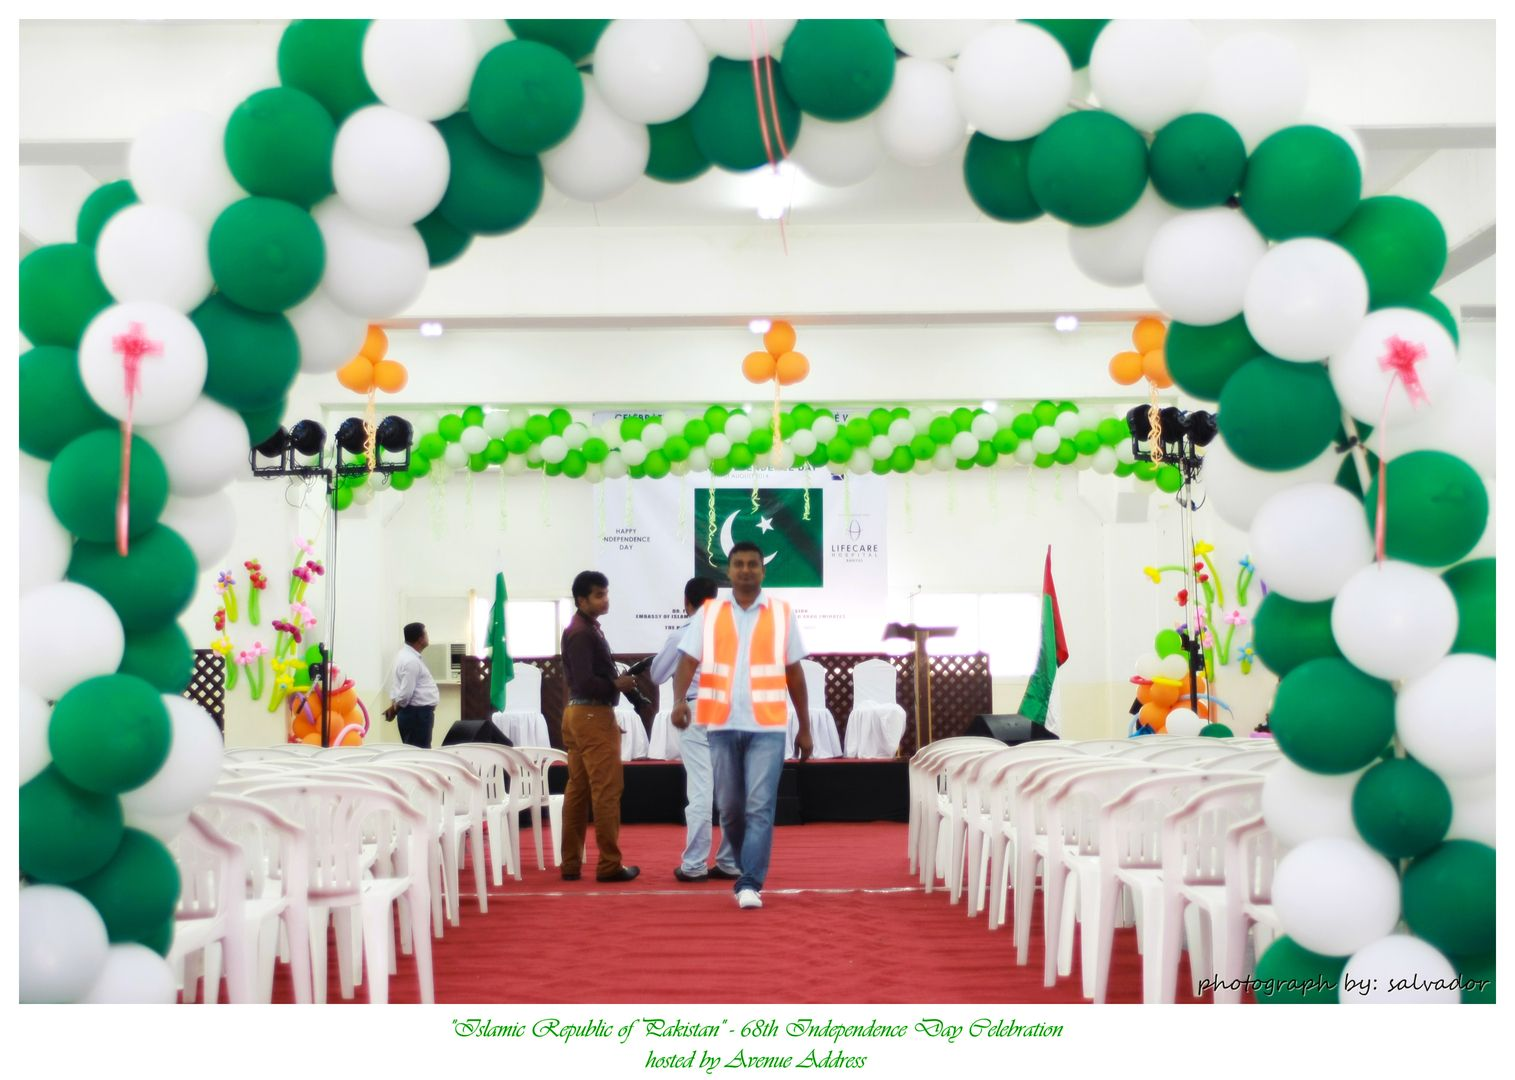 Image Result For Pakistan Independence Day Decoration Independence Day Decoration Independence Day Pakistan Independence